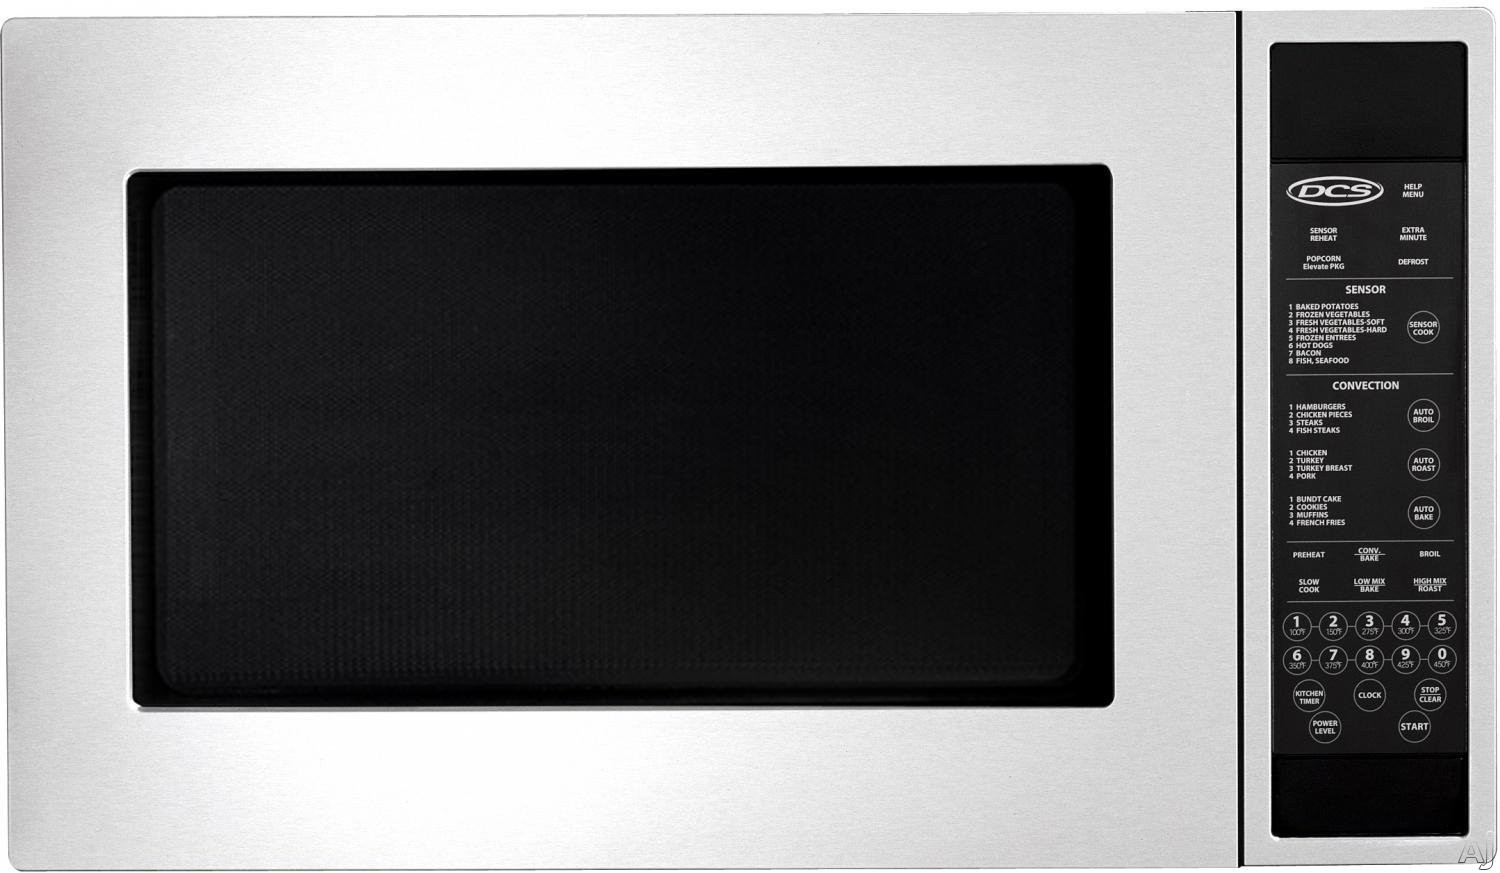 Fisher & Paykel CMO24SS2 1.5 cu. ft. Countertop Microwave Oven with 1,450 Watt Convection Element, U.S. & Canada CMO24SS2